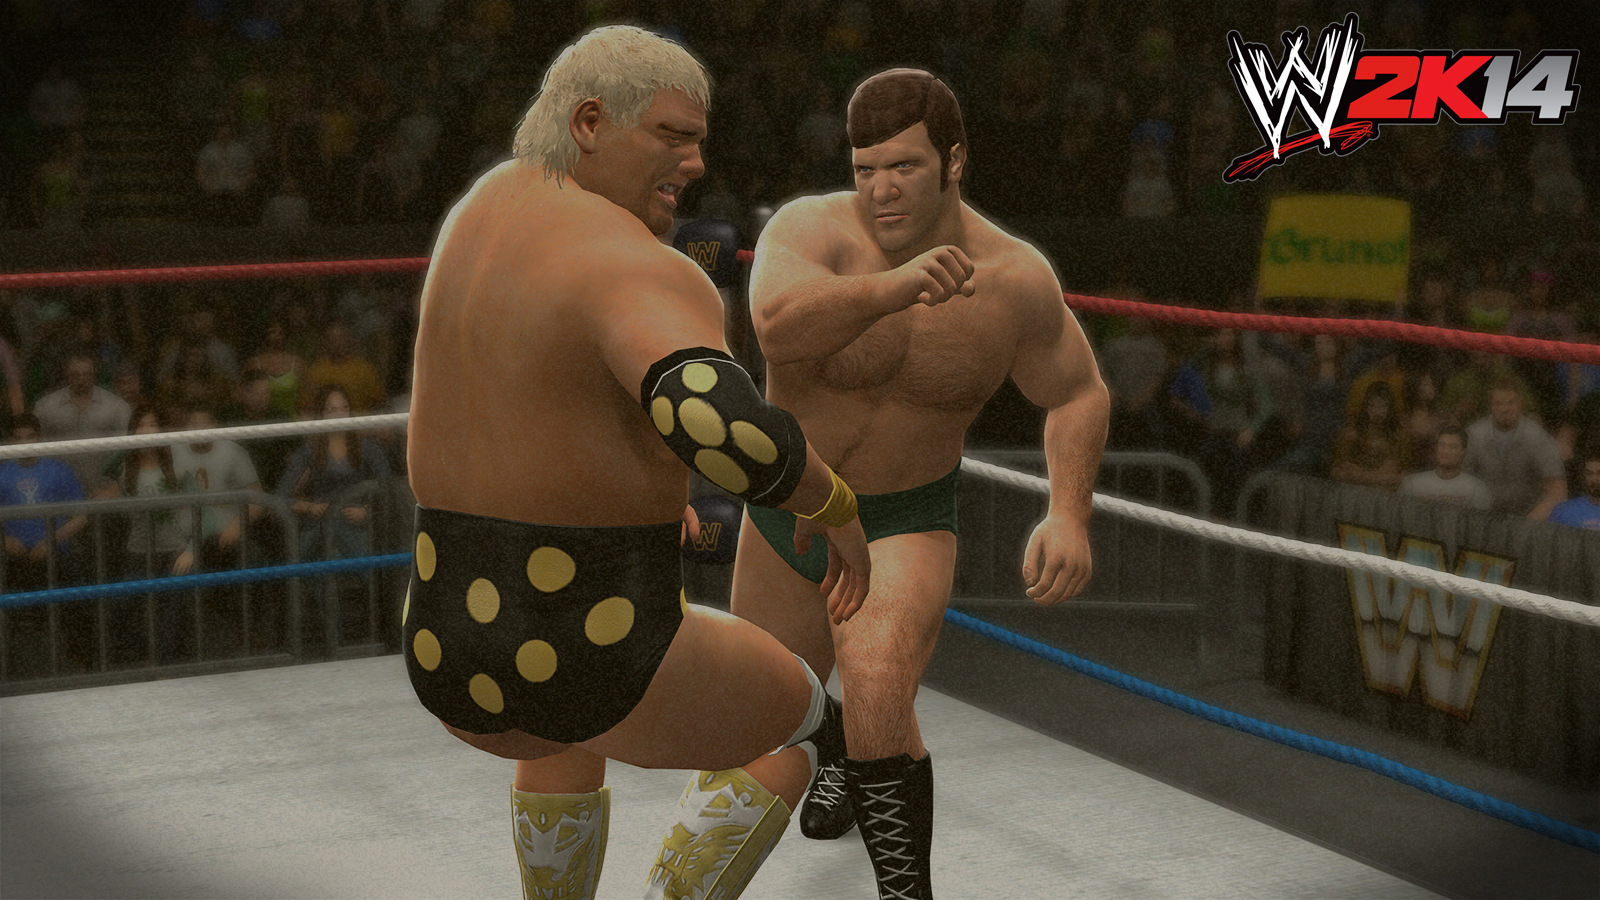 WWE 2K14 Review For Xbox 360 Cheat Code Central